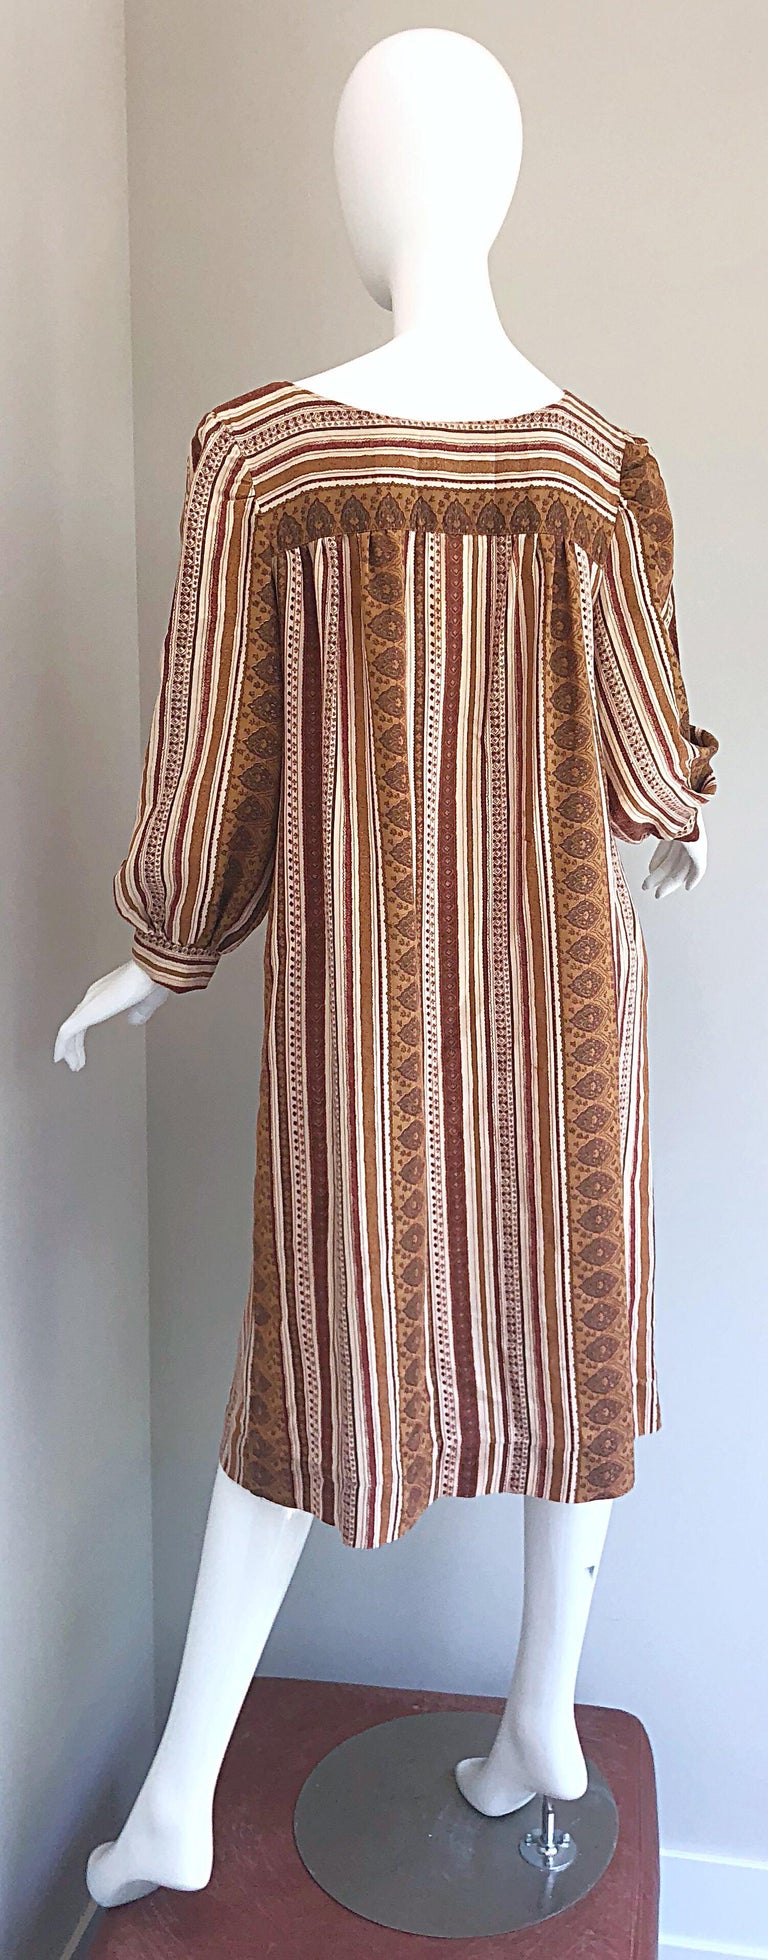 1970s Boho Chic Brown and Ivory Soft Cotton Paisley Print Vintage 70s Dress For Sale 4